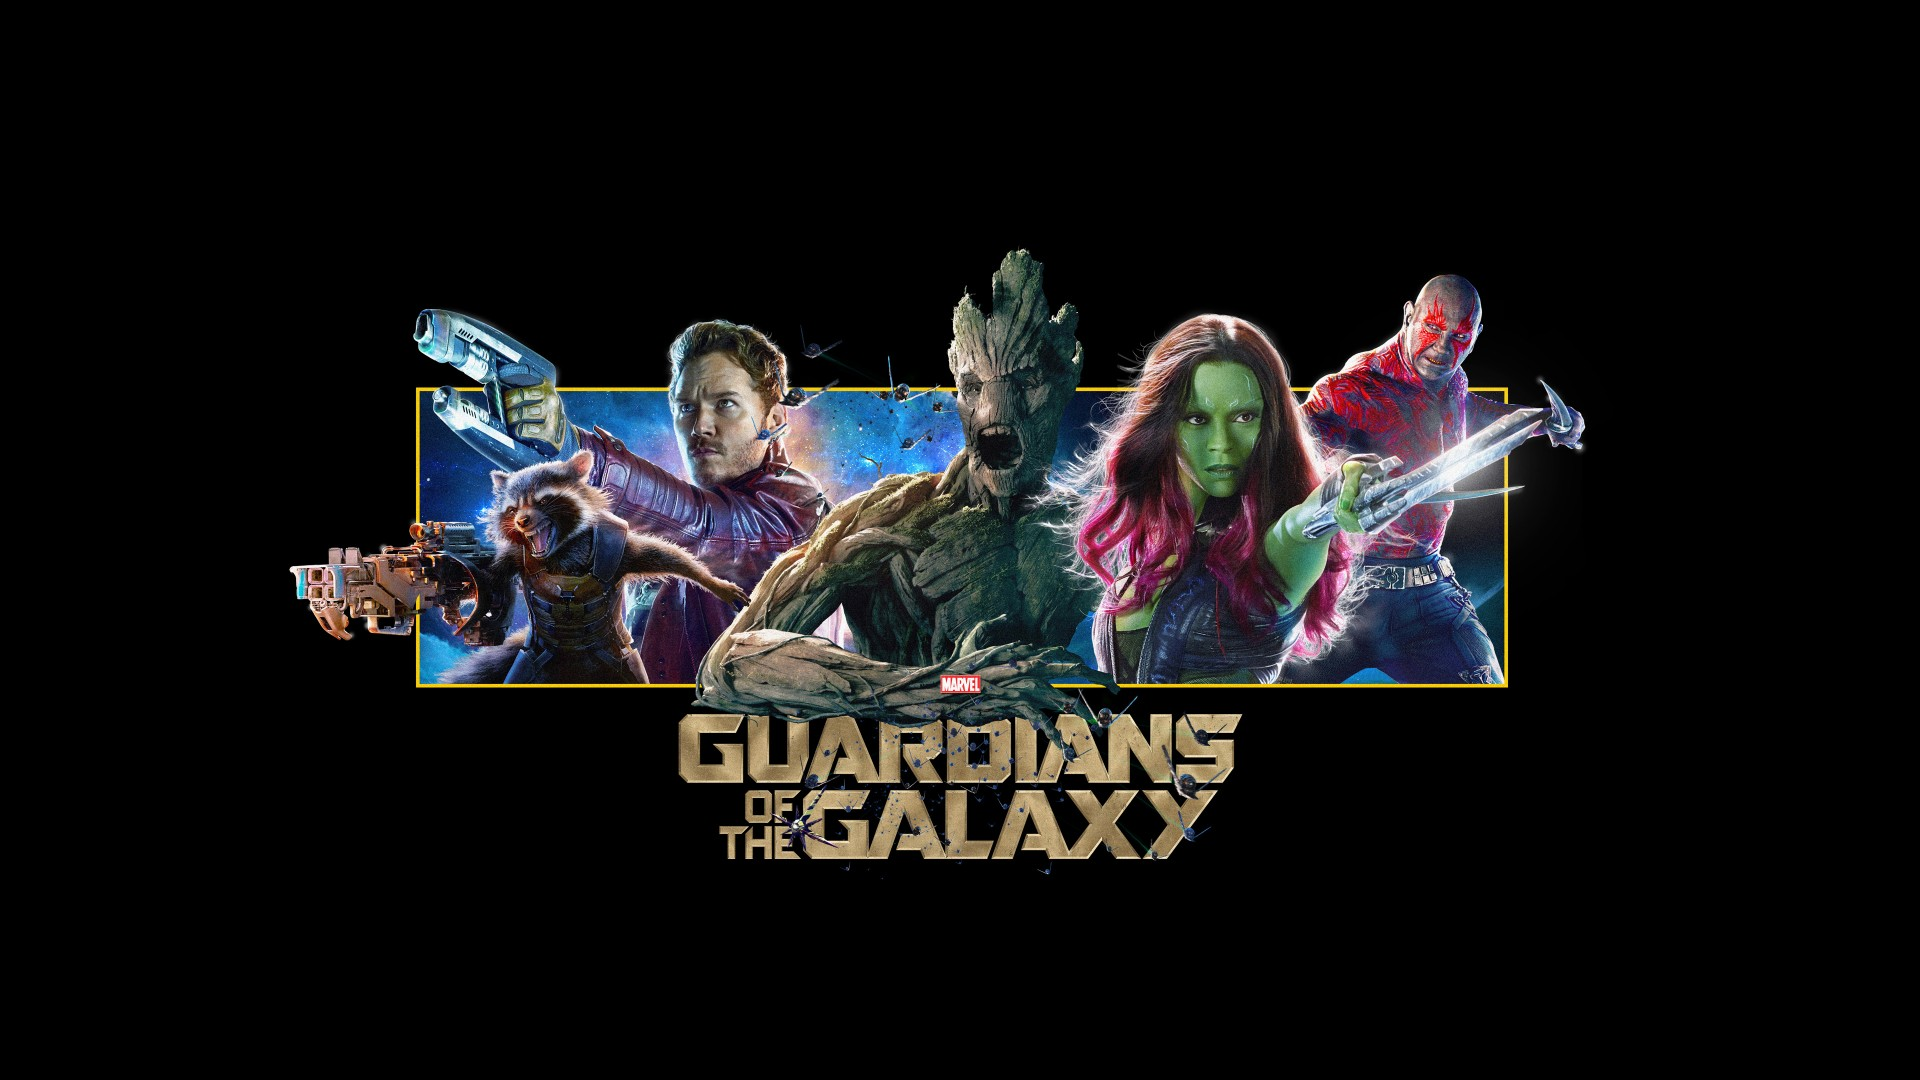 Cute Minecraft Wallpapers Guardians Of The Galaxy Banner Wallpapers Hd Wallpapers